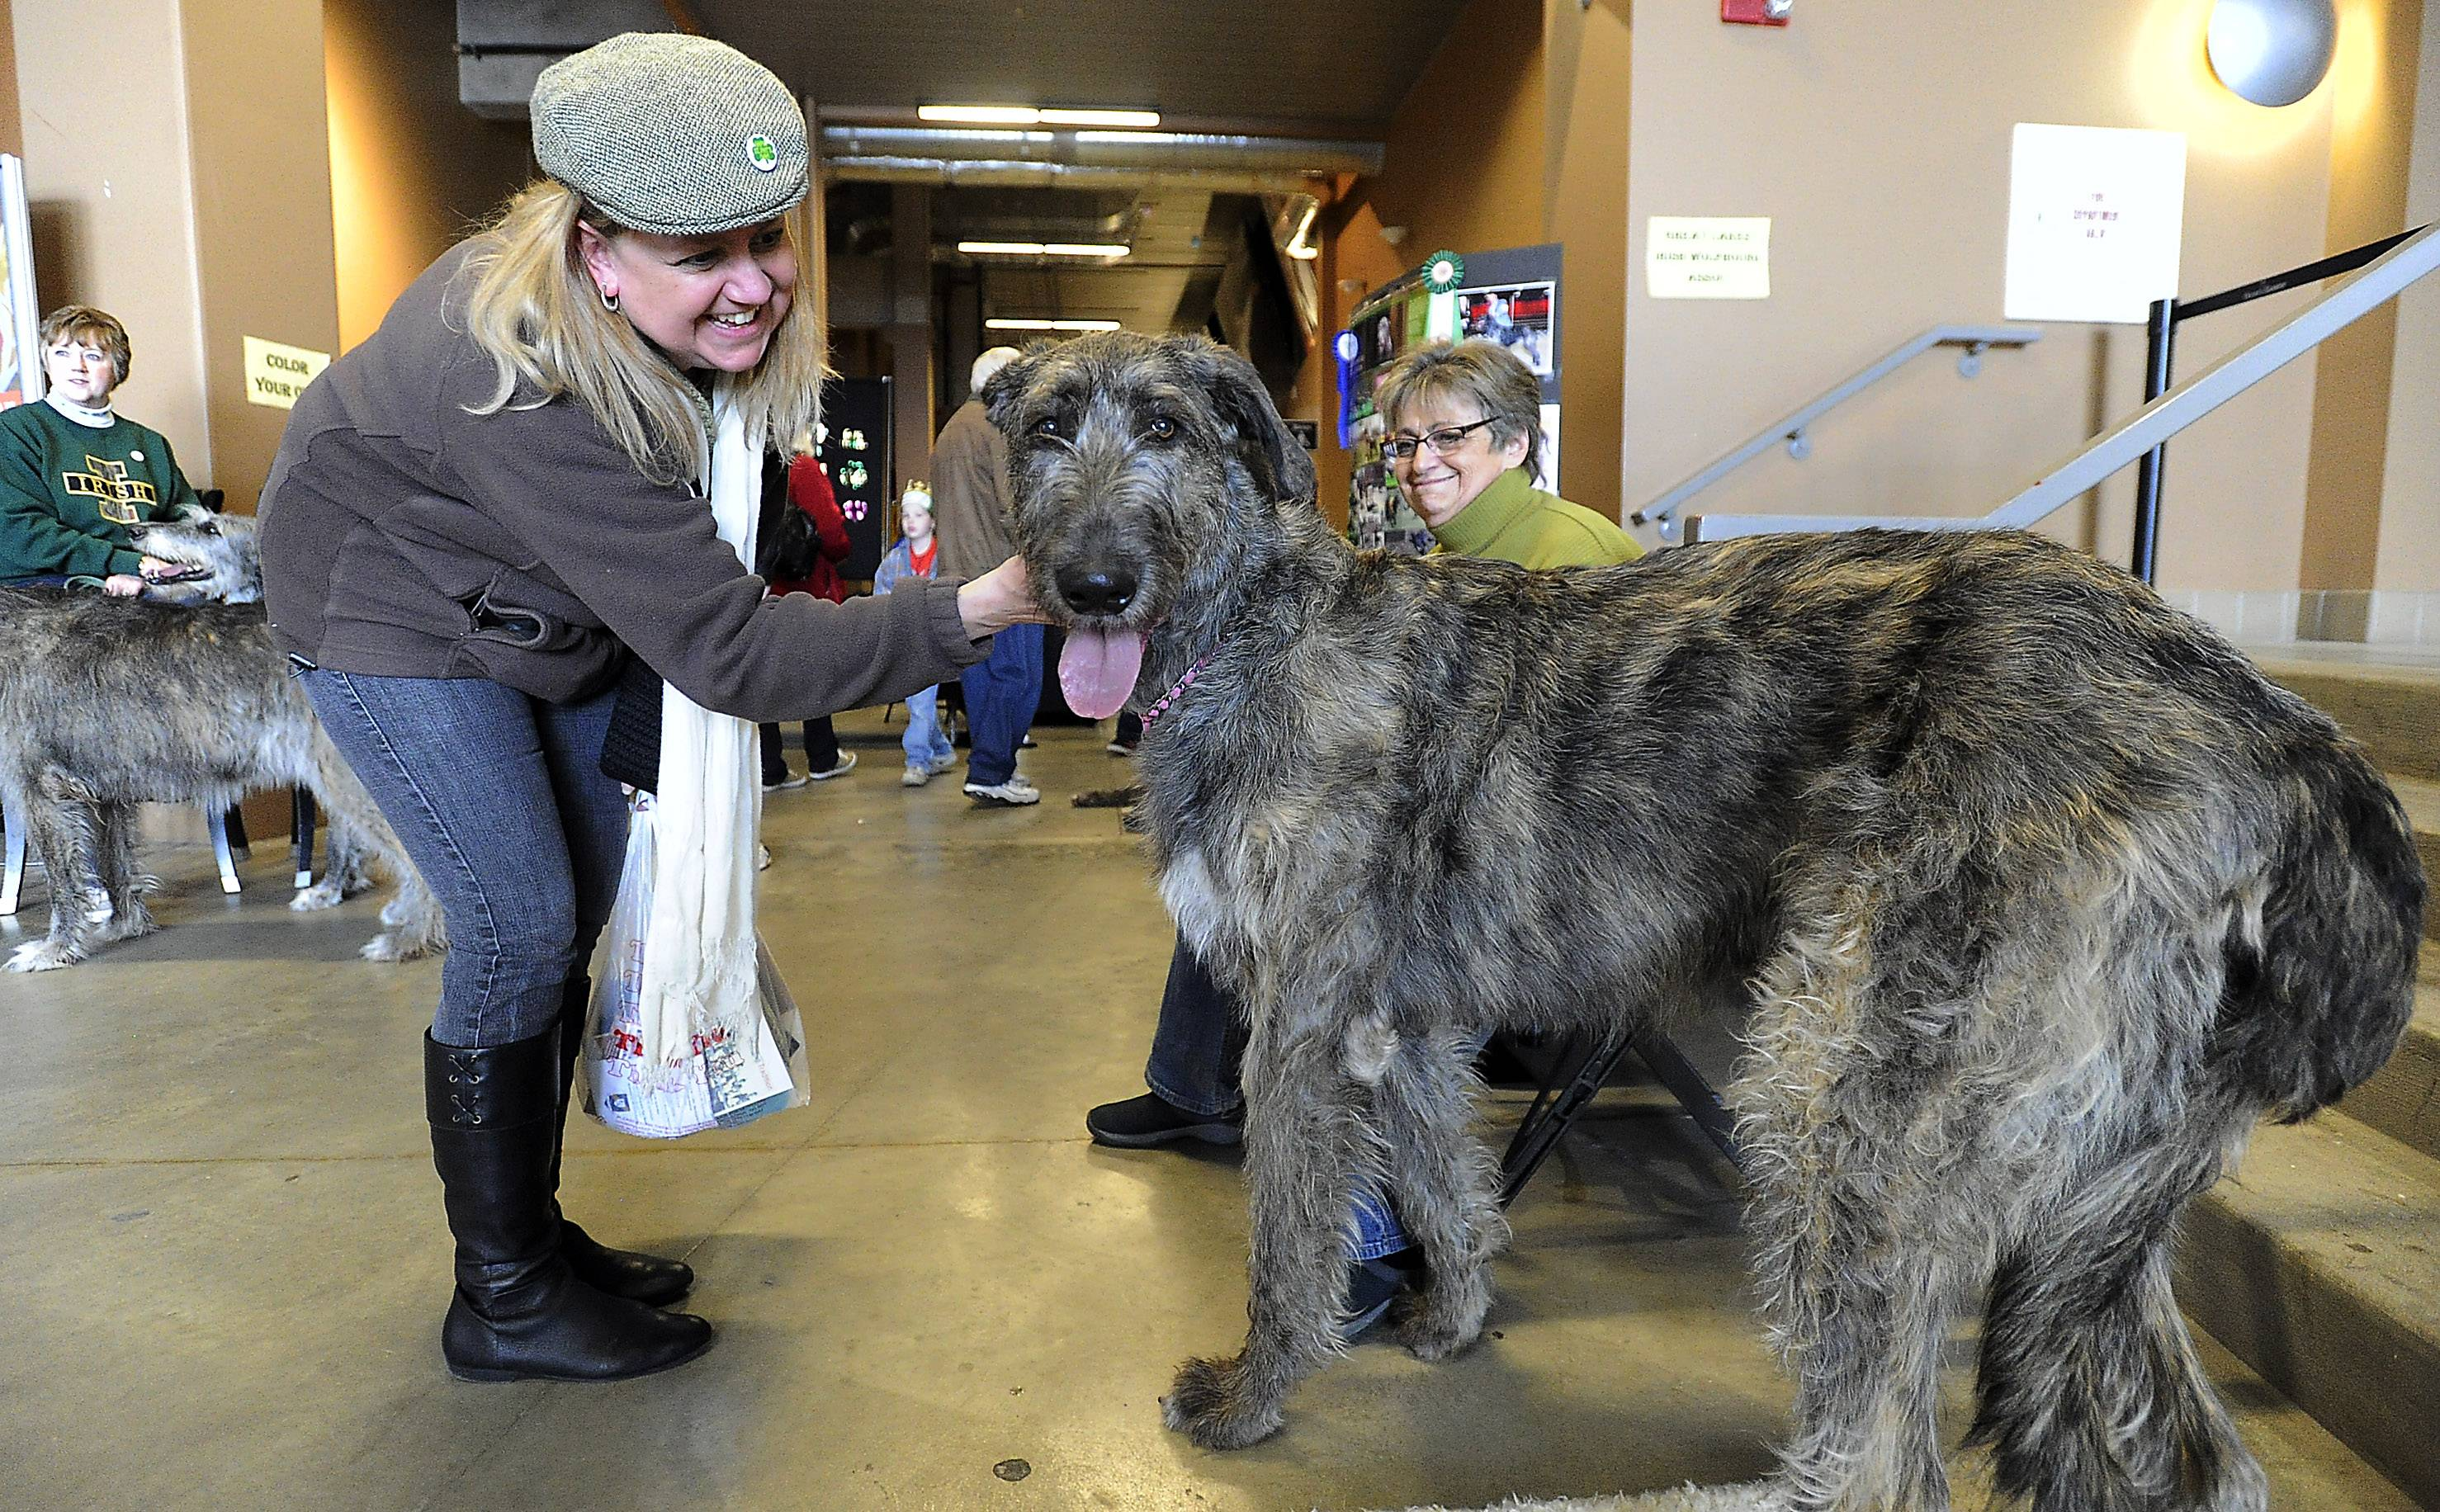 Suzy Finn of Arlington Heights pets Odetta, an Irish wolfhound not quite a year old, at the third annual Northwest Celtic Fest on Saturday at the Sears Centre in Hoffman Estates.